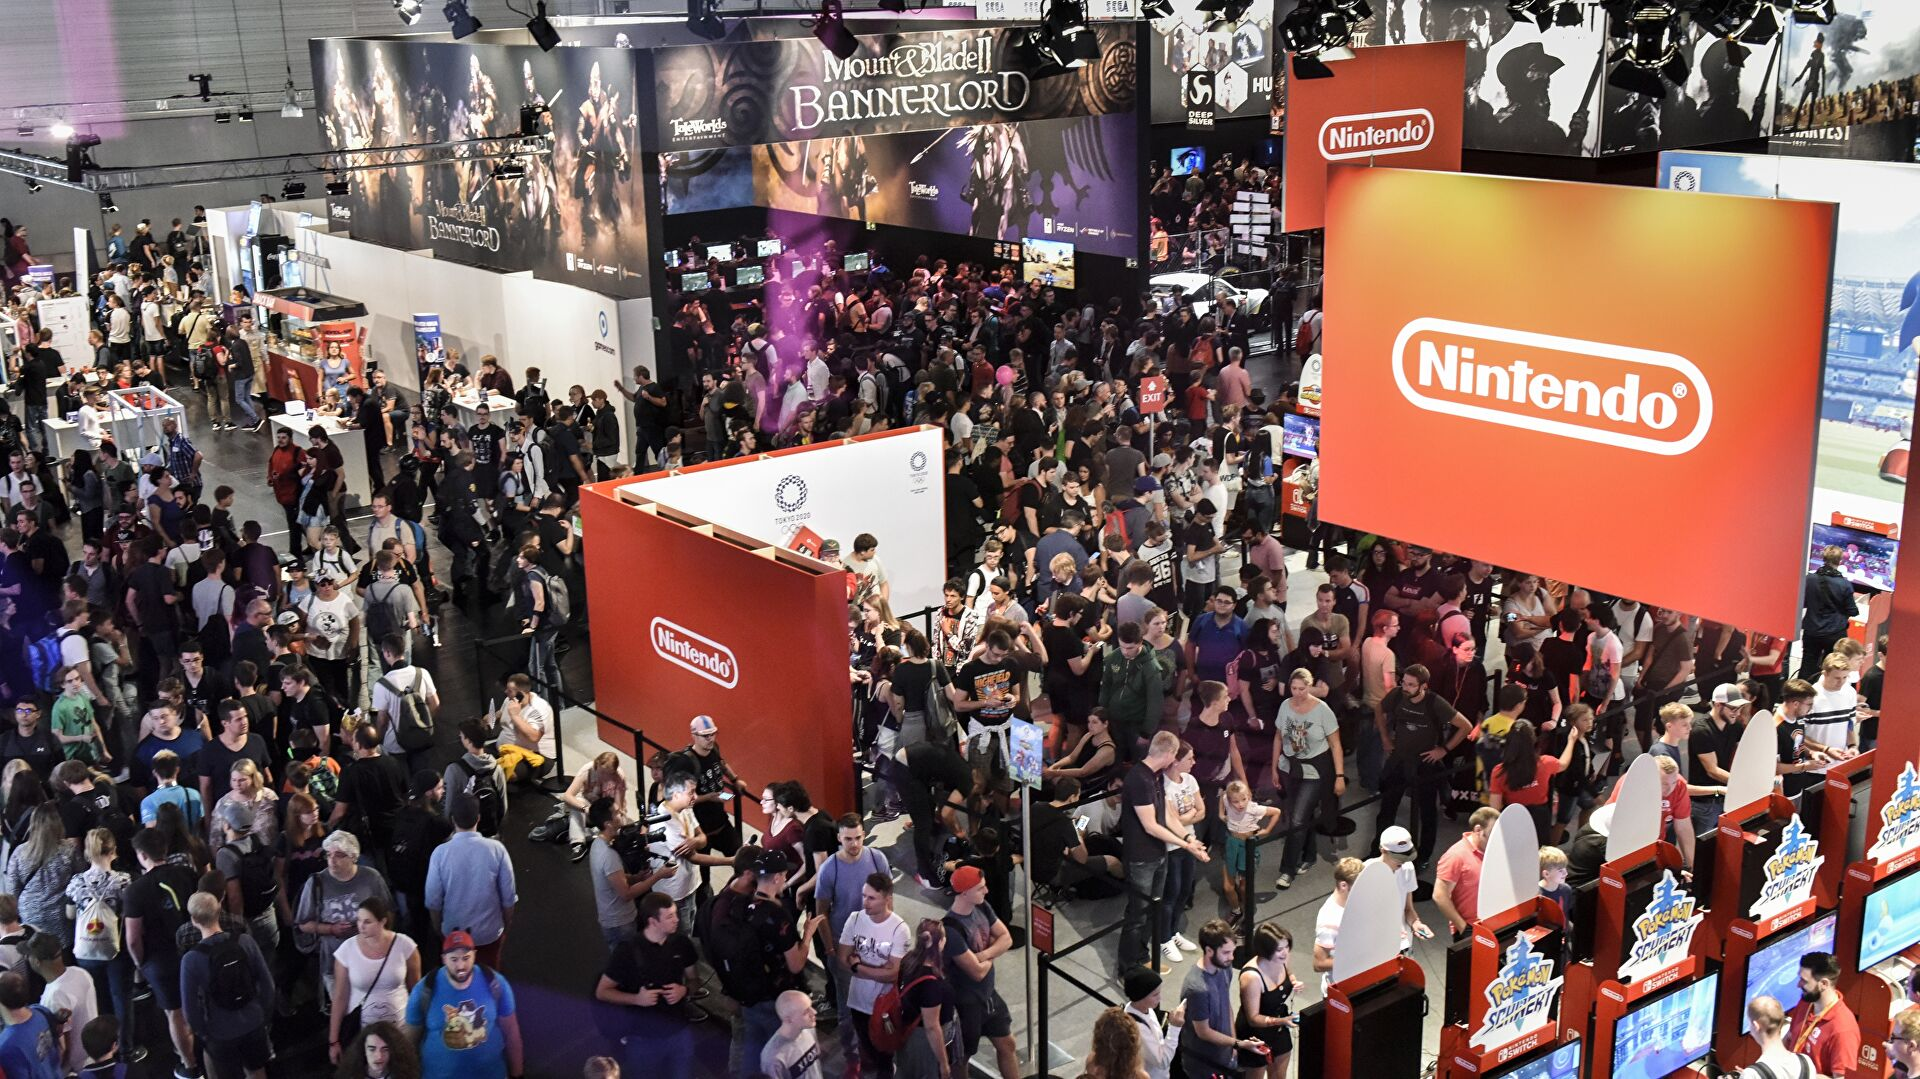 Gamescom returns this year as both a physical and digital event